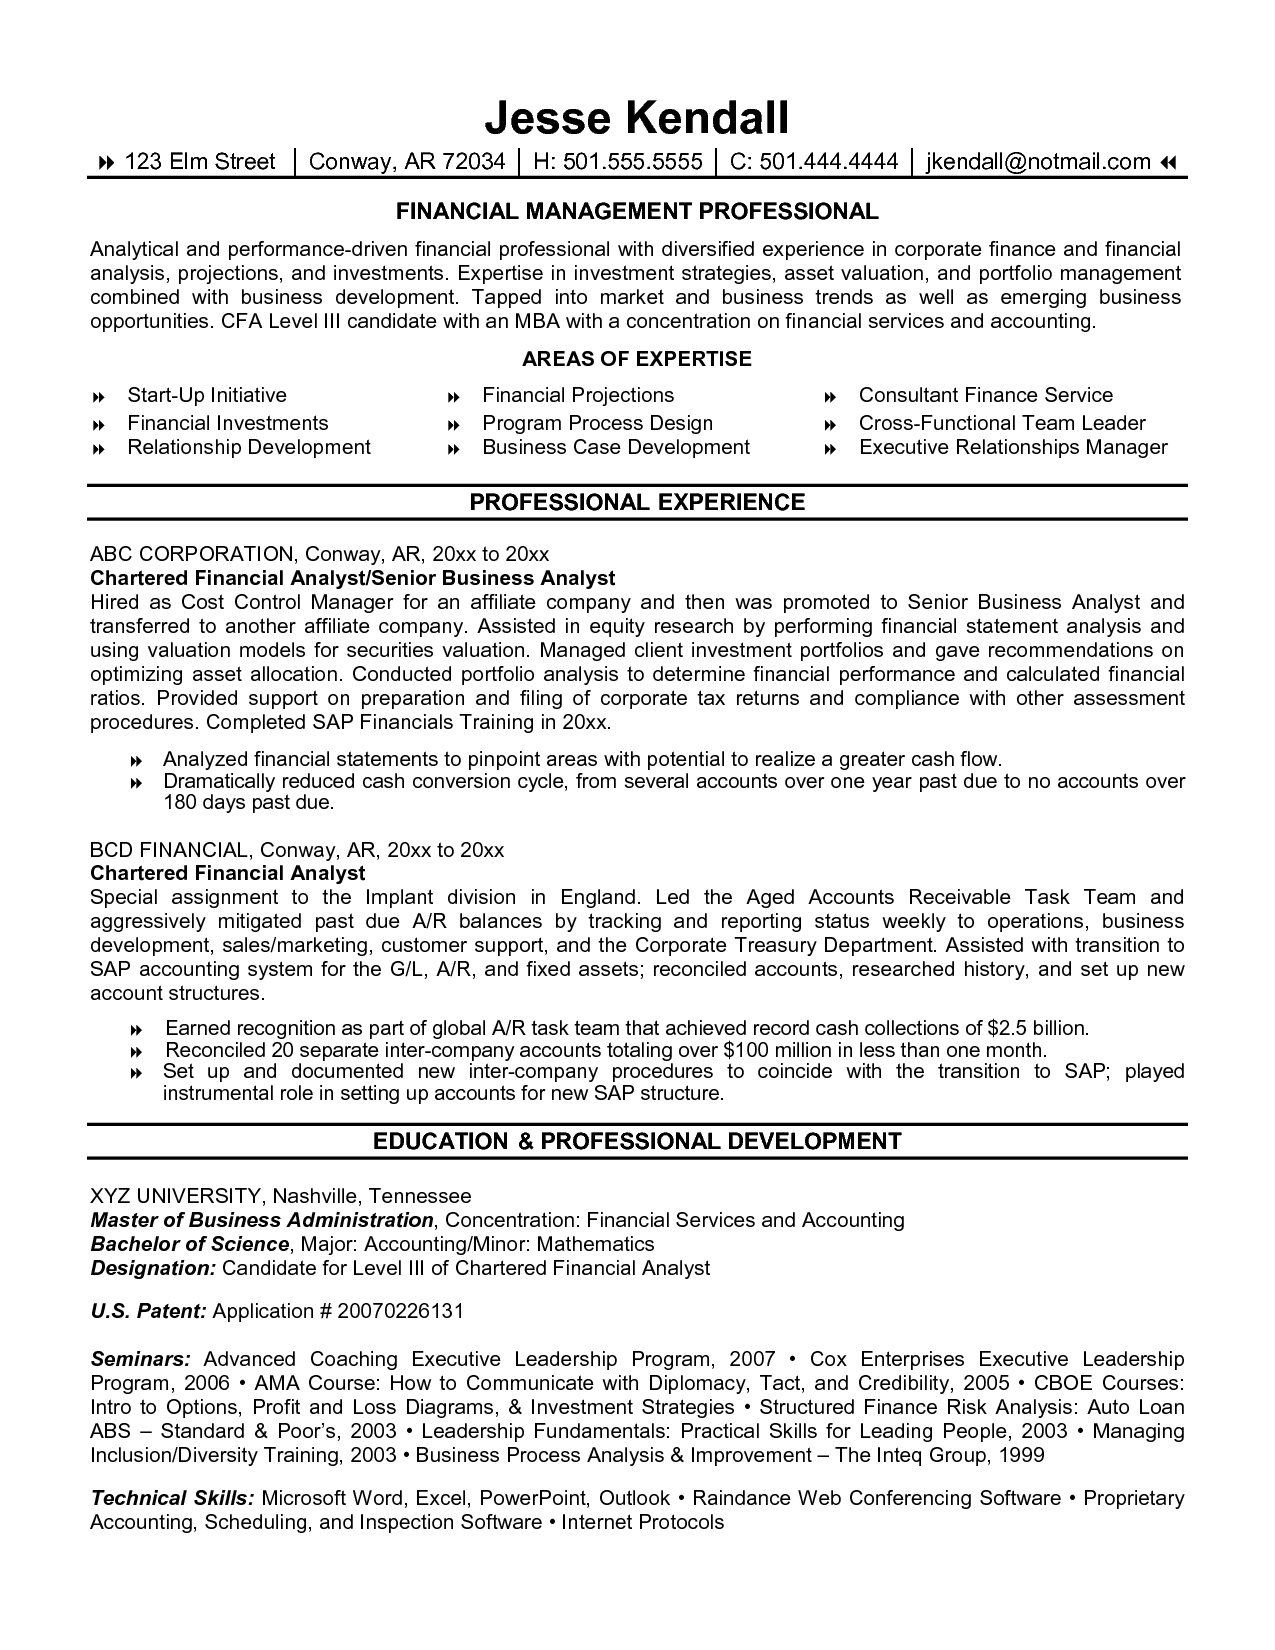 Professional Examples Of Resumes Resume Financial Management Professional Analyst